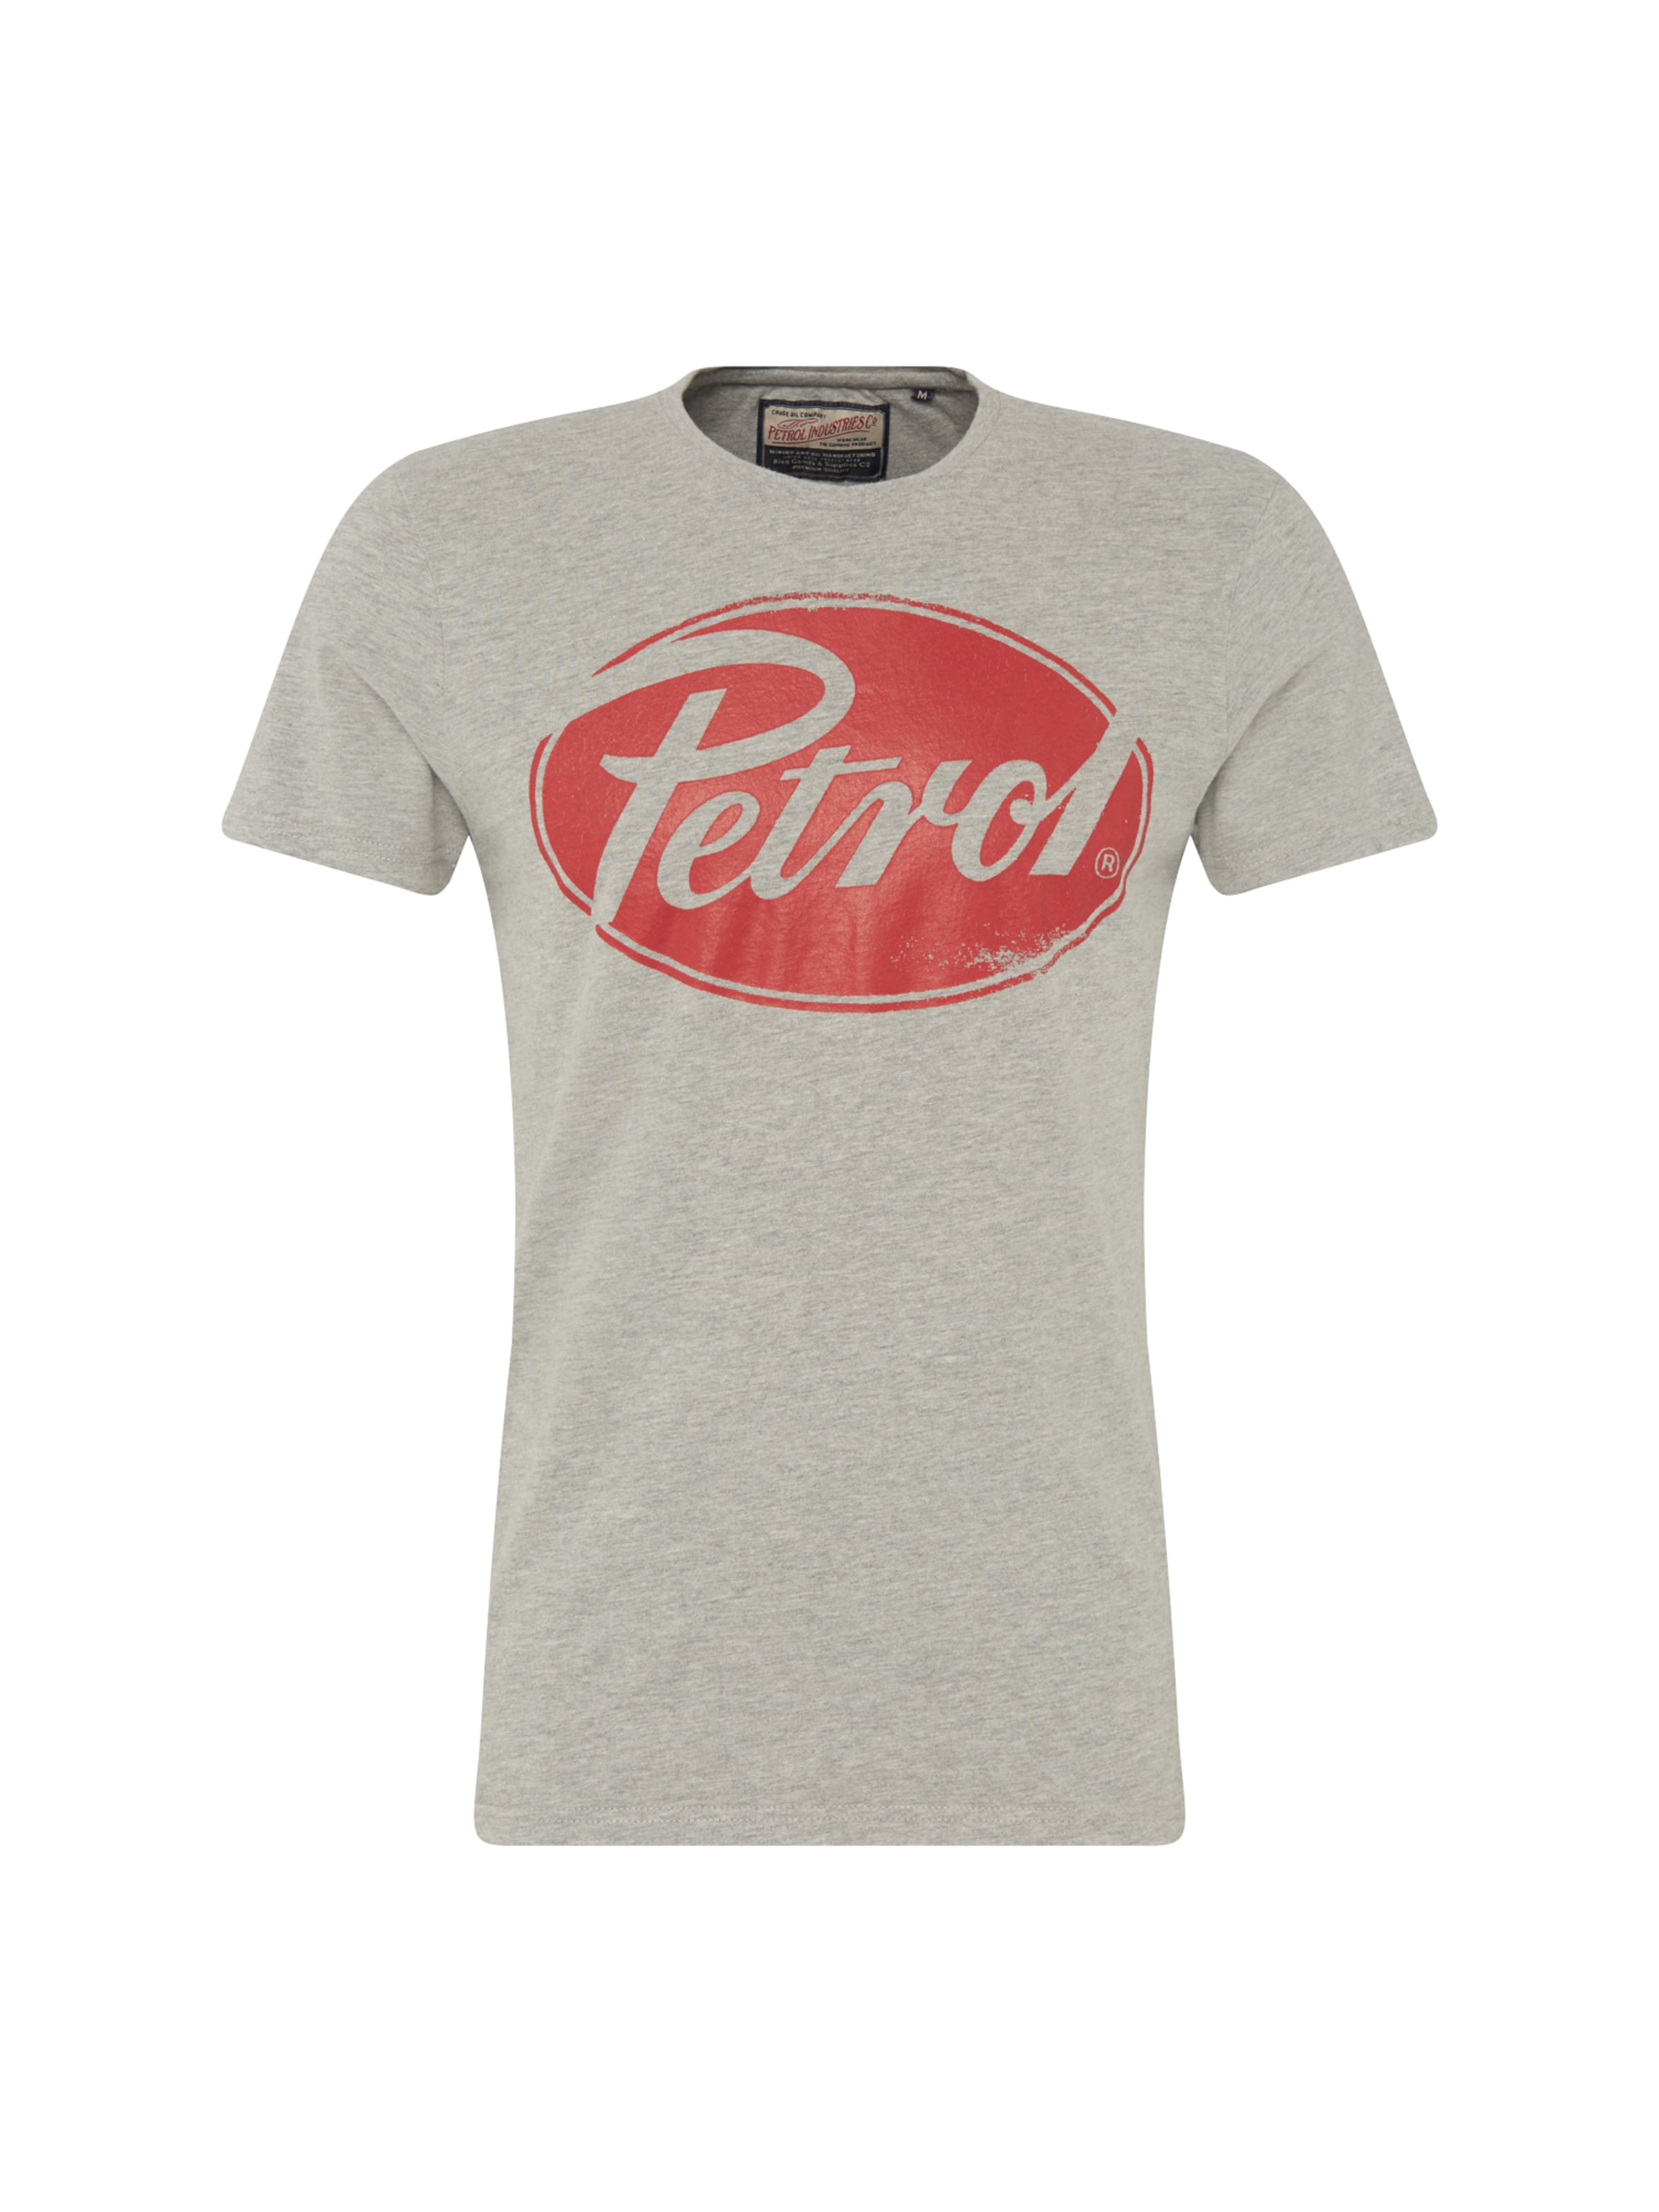 In Petrol Petrol IndustriesT shirt RougeNoir Petrol IndustriesT In shirt RougeNoir R354jqAL